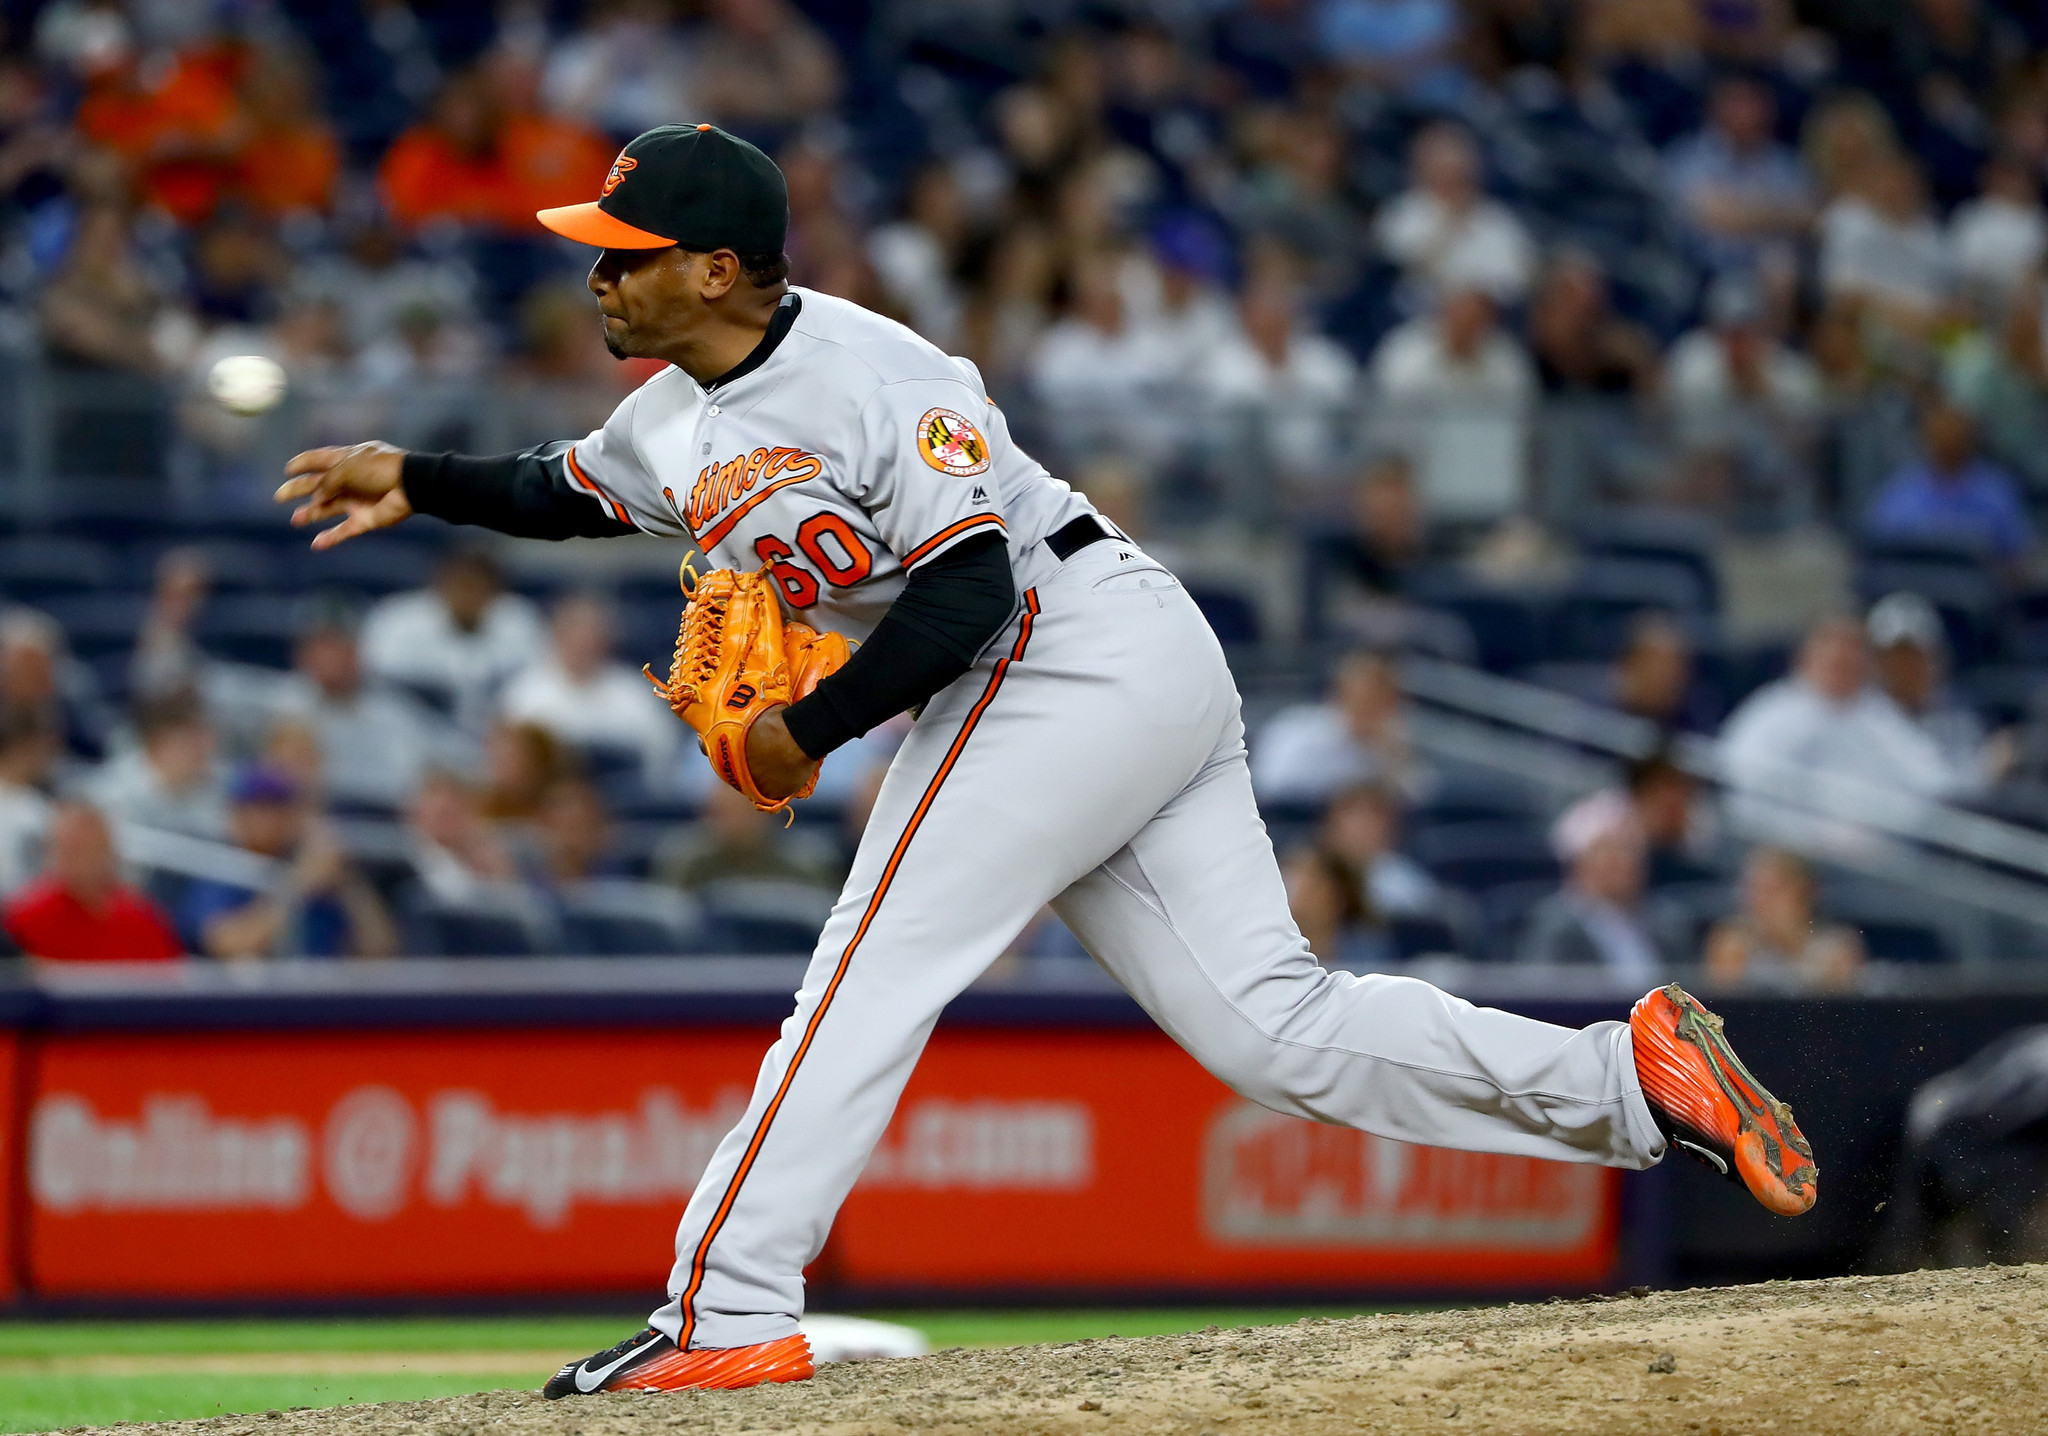 Bal-mychal-givens-uses-his-changeup-to-combat-struggles-against-lefties-20160726